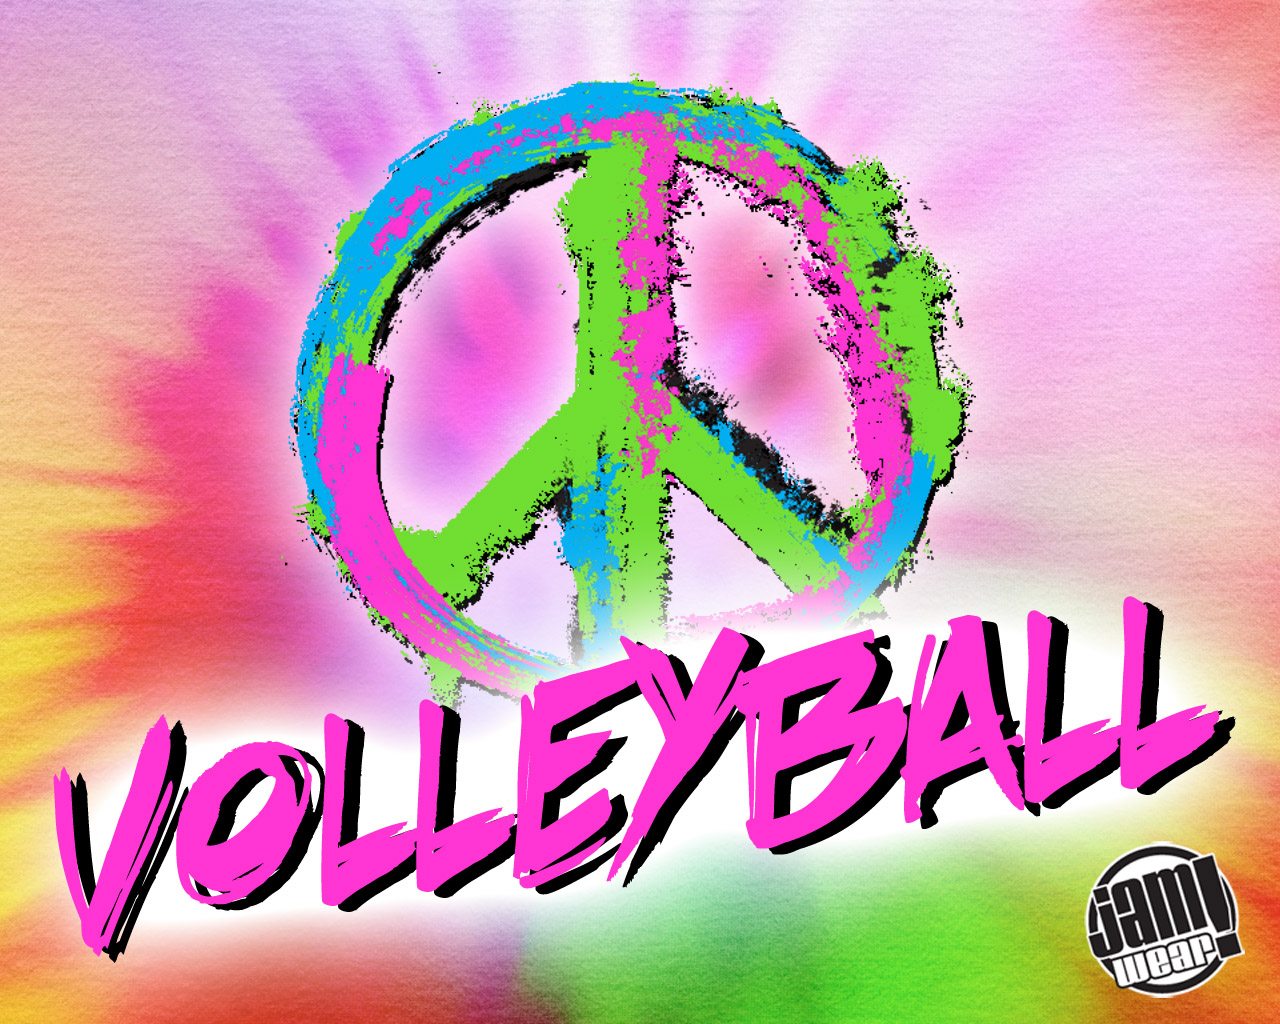 Volleyball Clipart  Awesome and FREE!  Volleyball Court